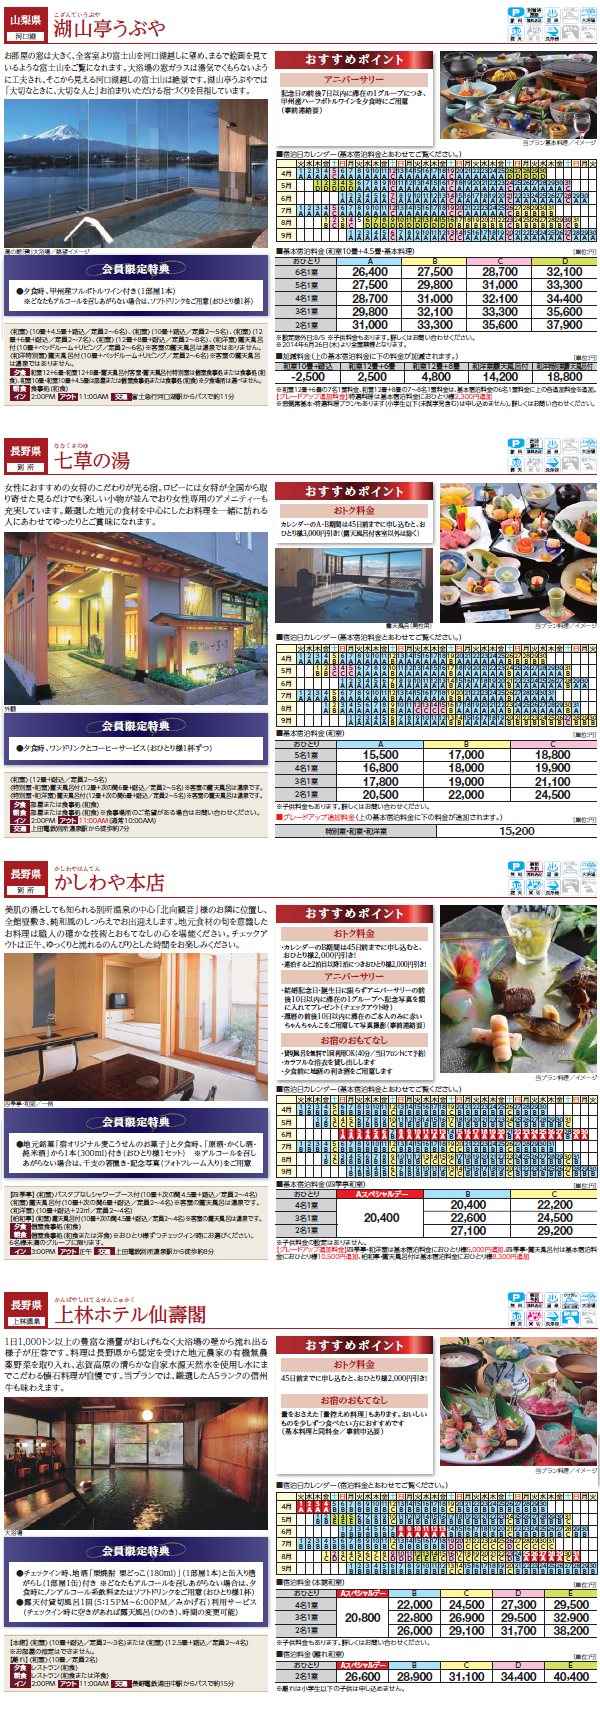 stay_plan_ryokan_1403_12